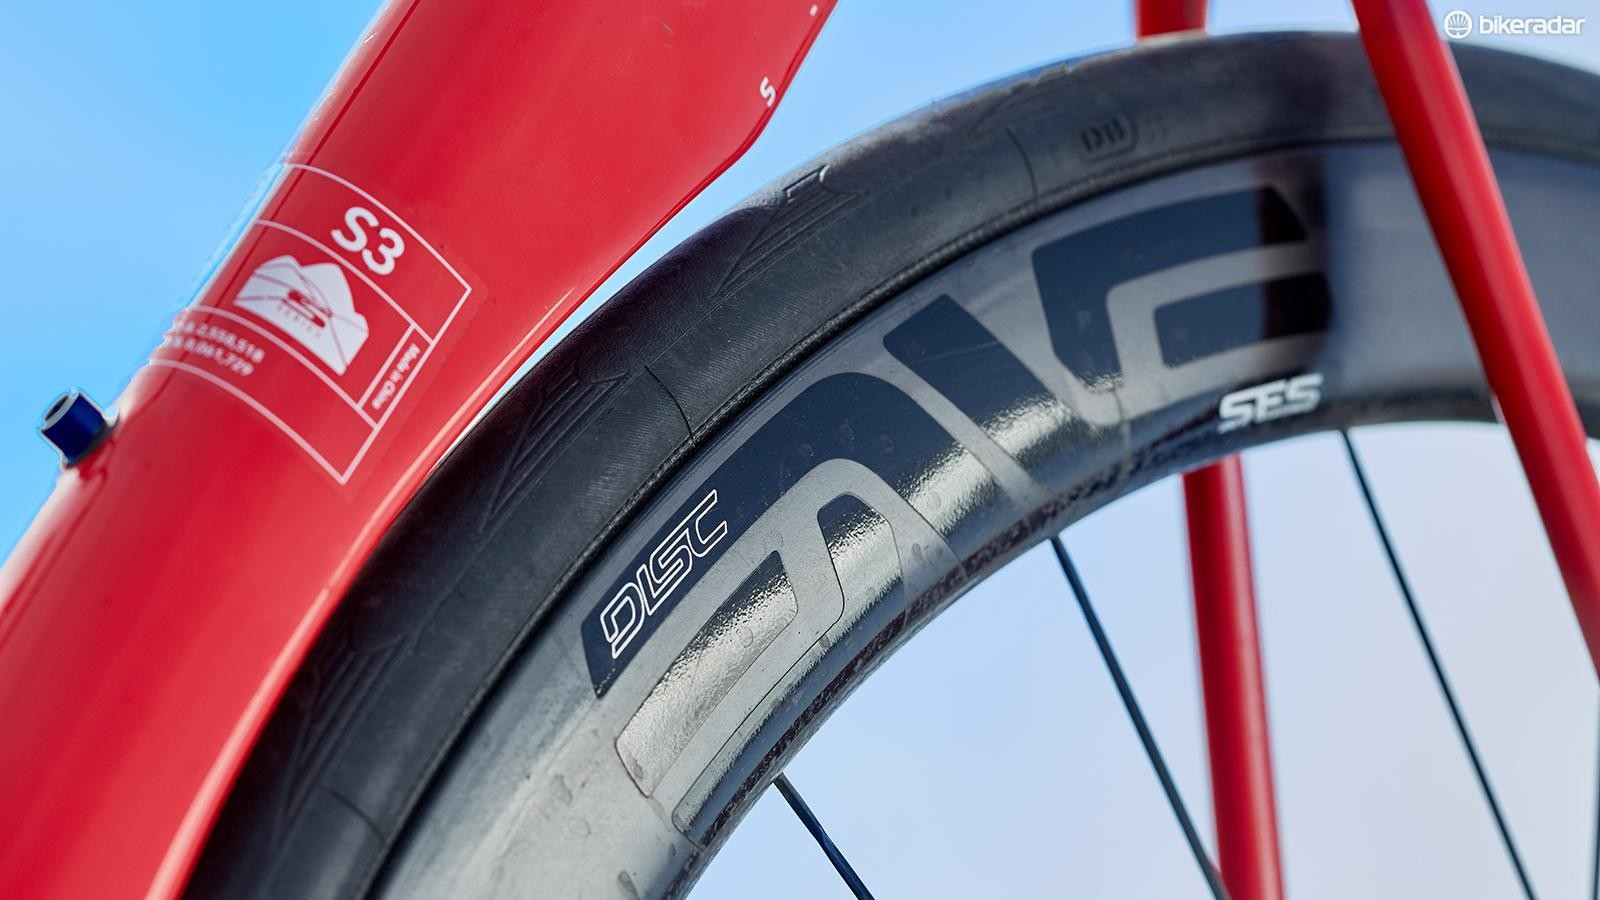 The ENVE rims are oblivious to forces from crosswinds, giving confidence at speed